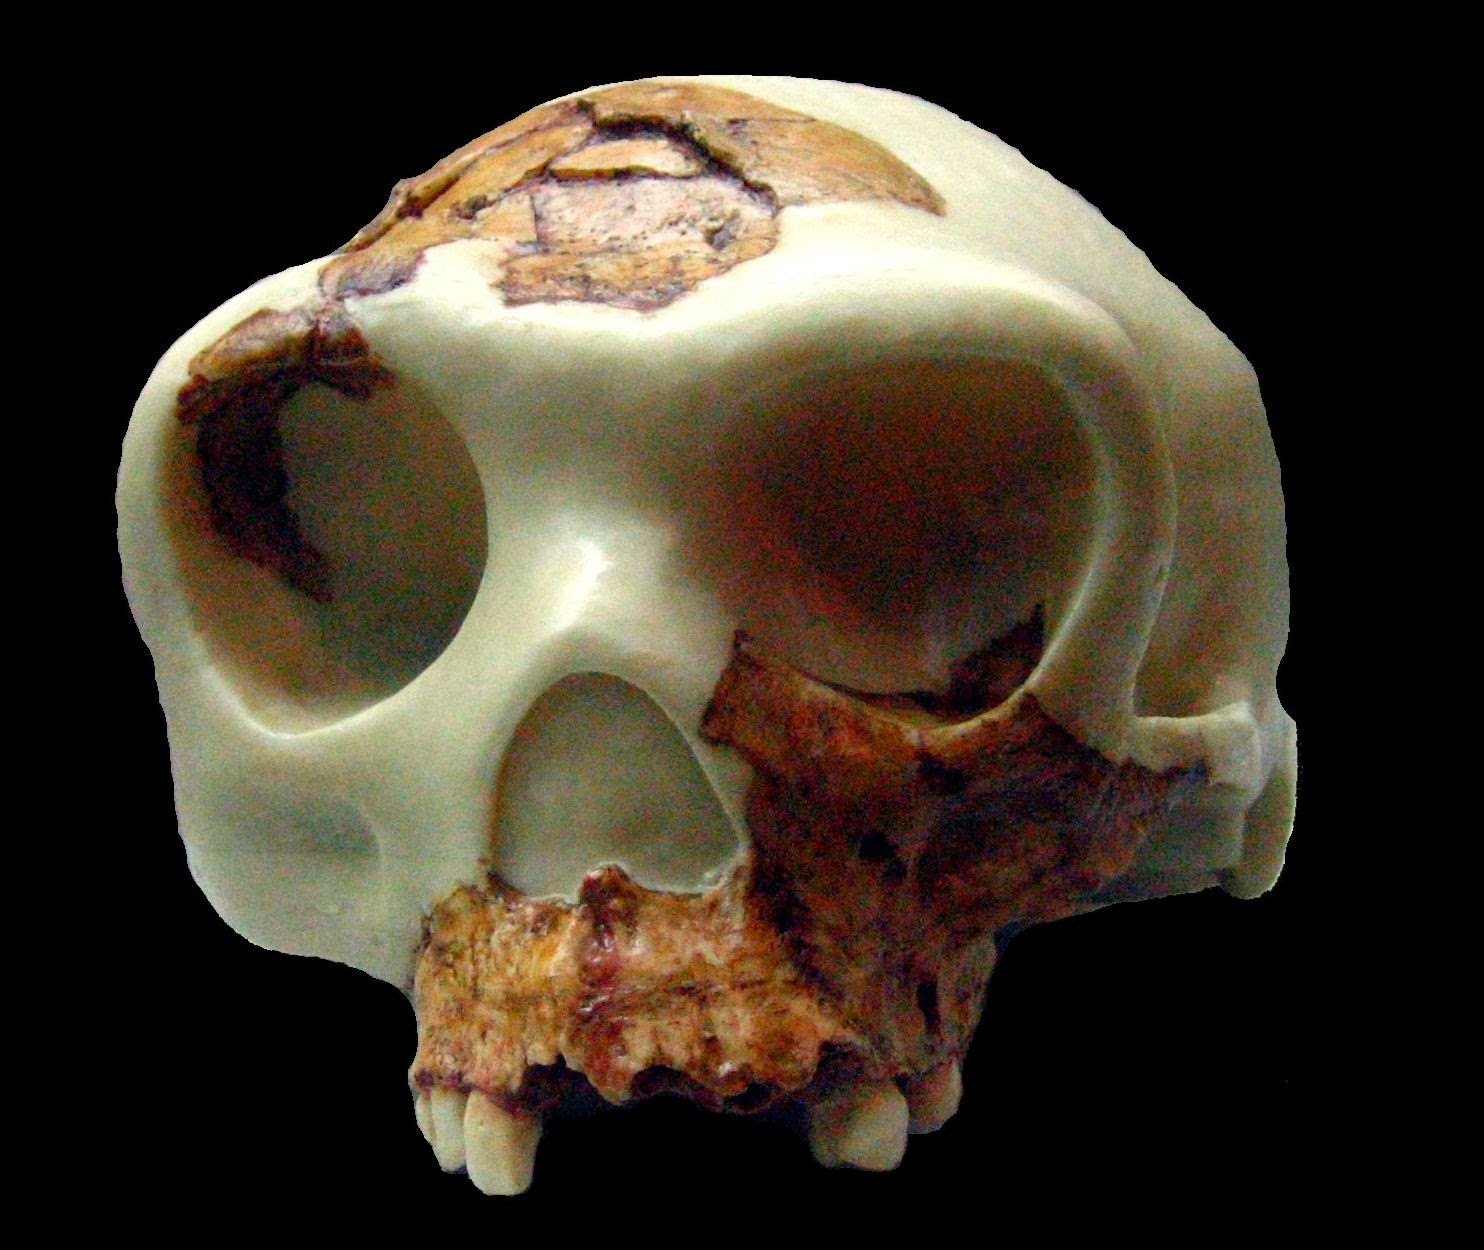 Dating refined for Atapuerca site where Homo antecessor appeared